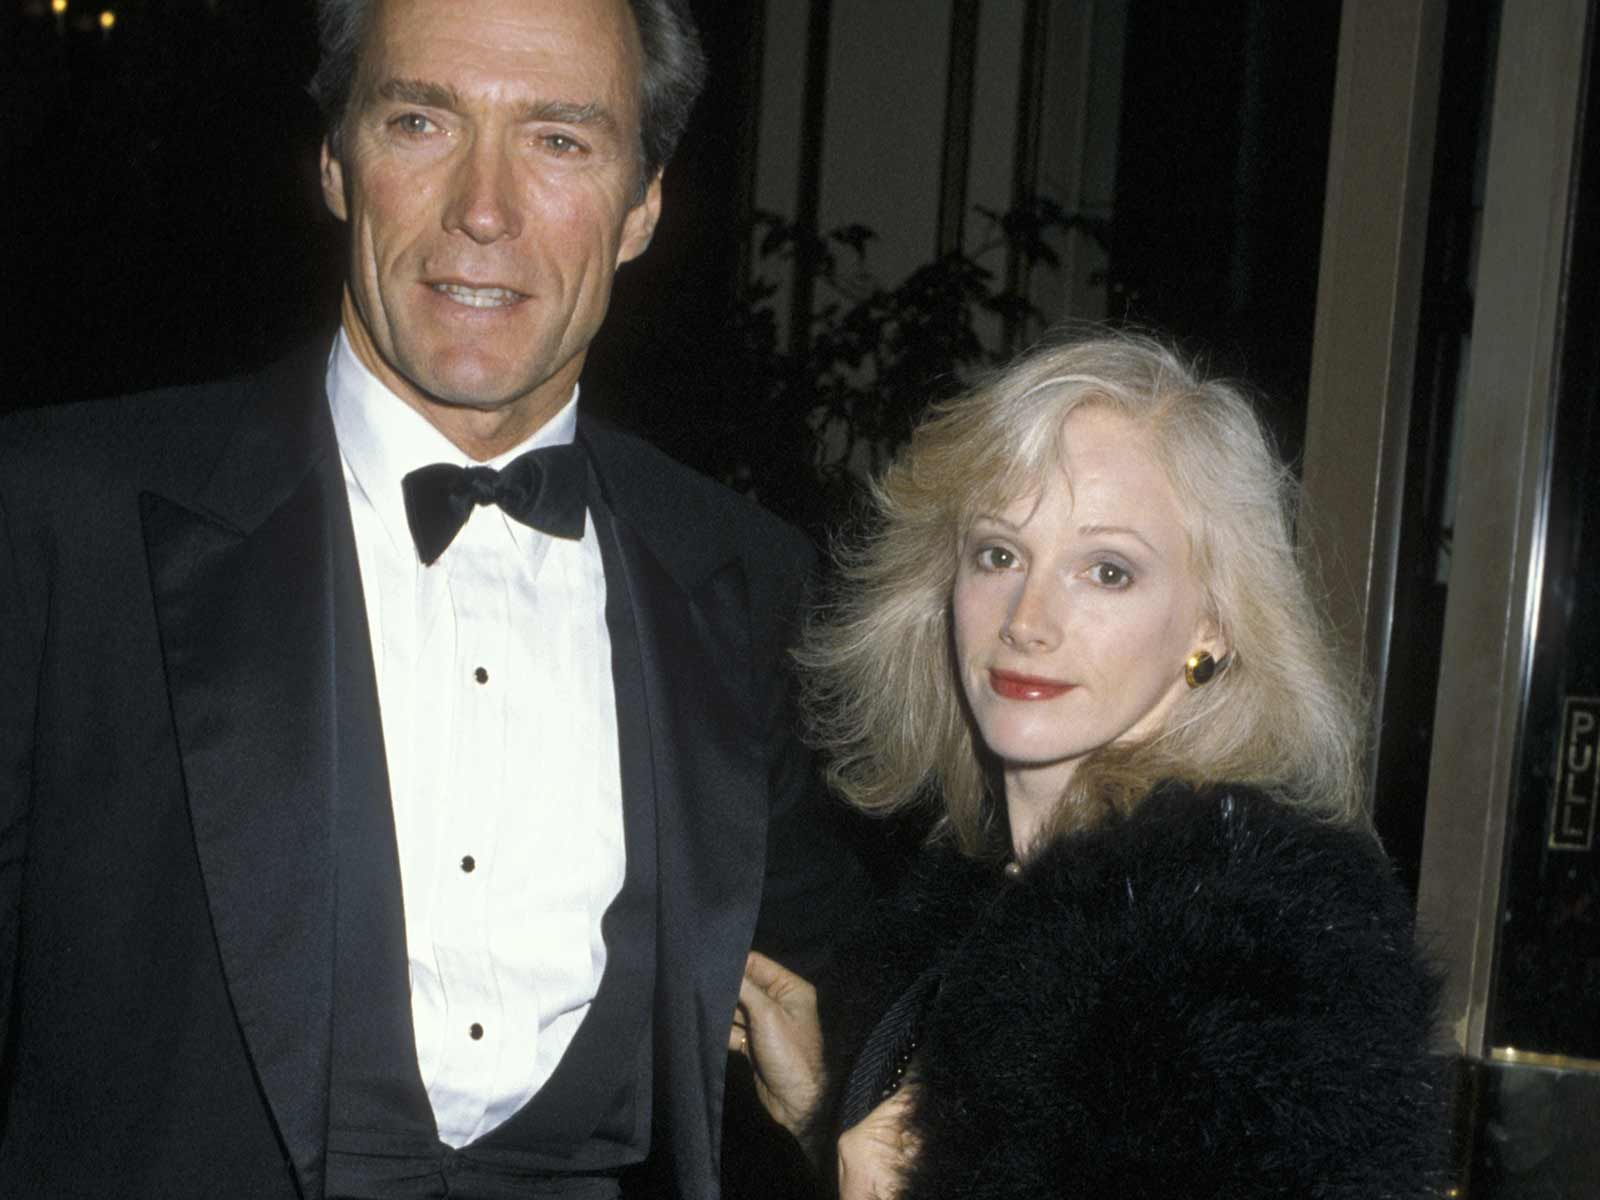 Clint Eastwood's Longtime Girlfriend, Actress Sondra Locke